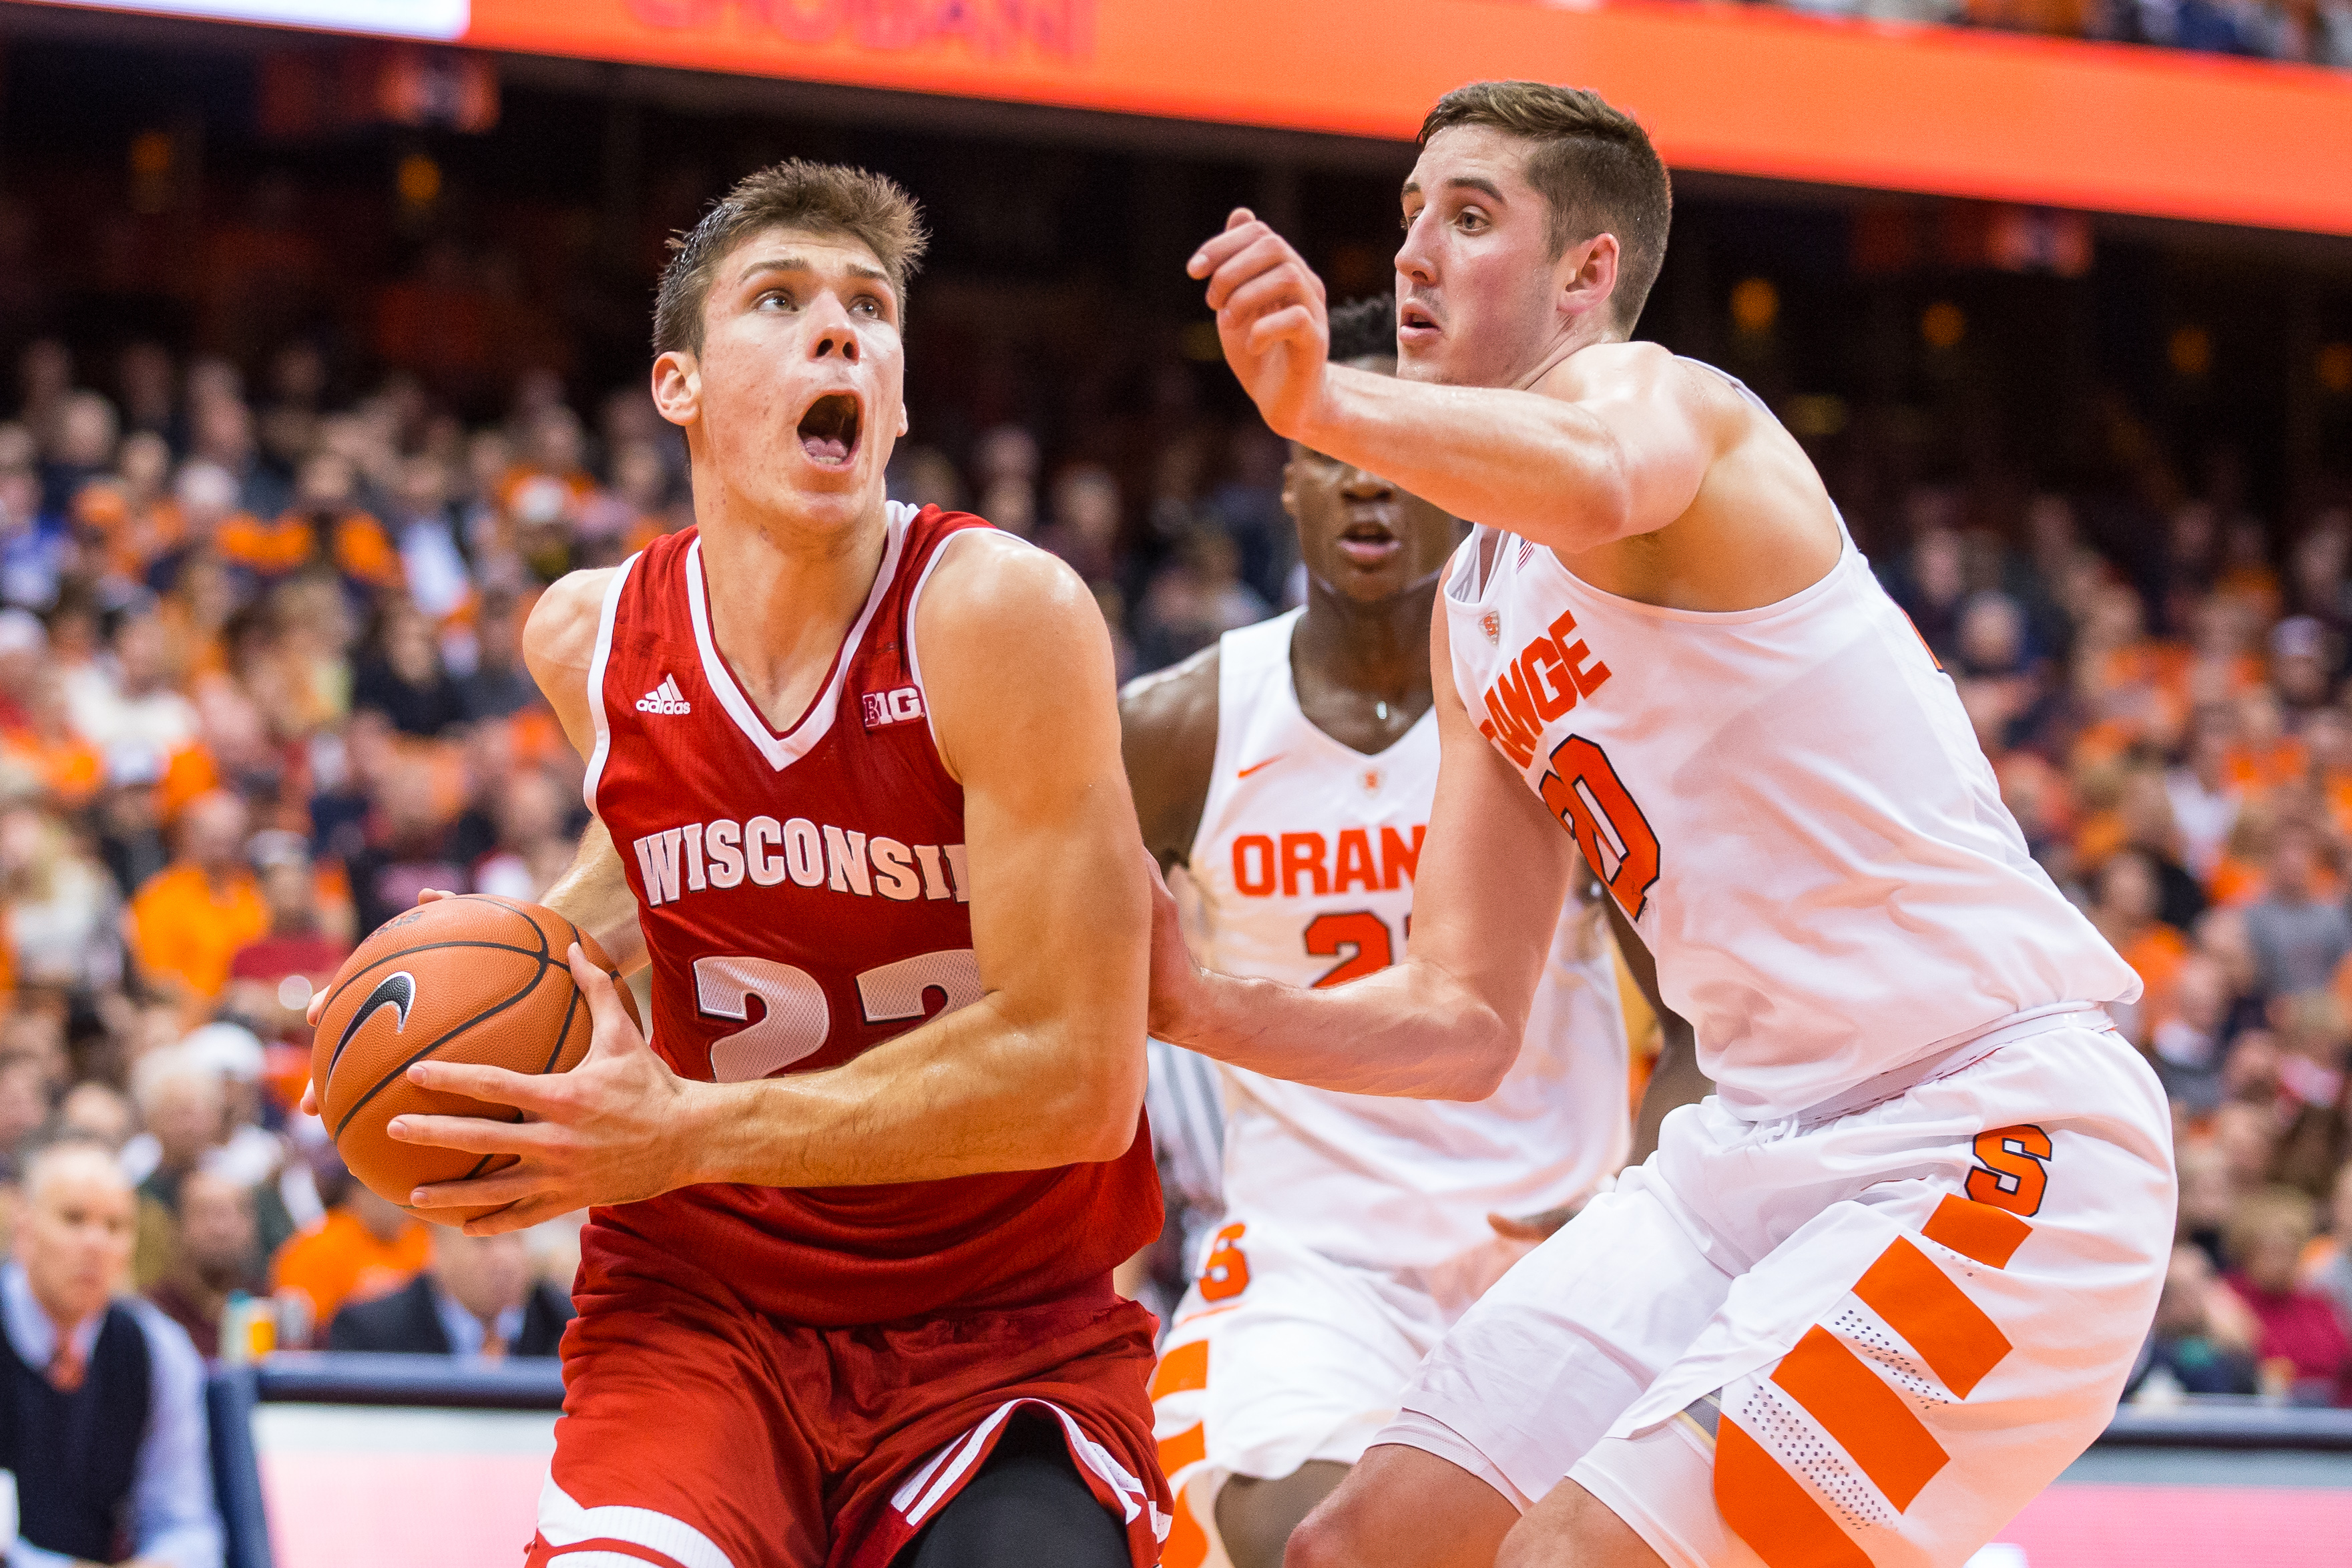 SYRACUSE, NY - DECEMBER 02: Ethan Happ #22 of the Wisconsin Badgers drives to the basket as Tyler Lydon #20 of the Syracuse Orange defends during the first half on December 2, 2015 at The Carrier Dome in Syracuse, New York. (Photo by Brett Carlsen/Getty Images)